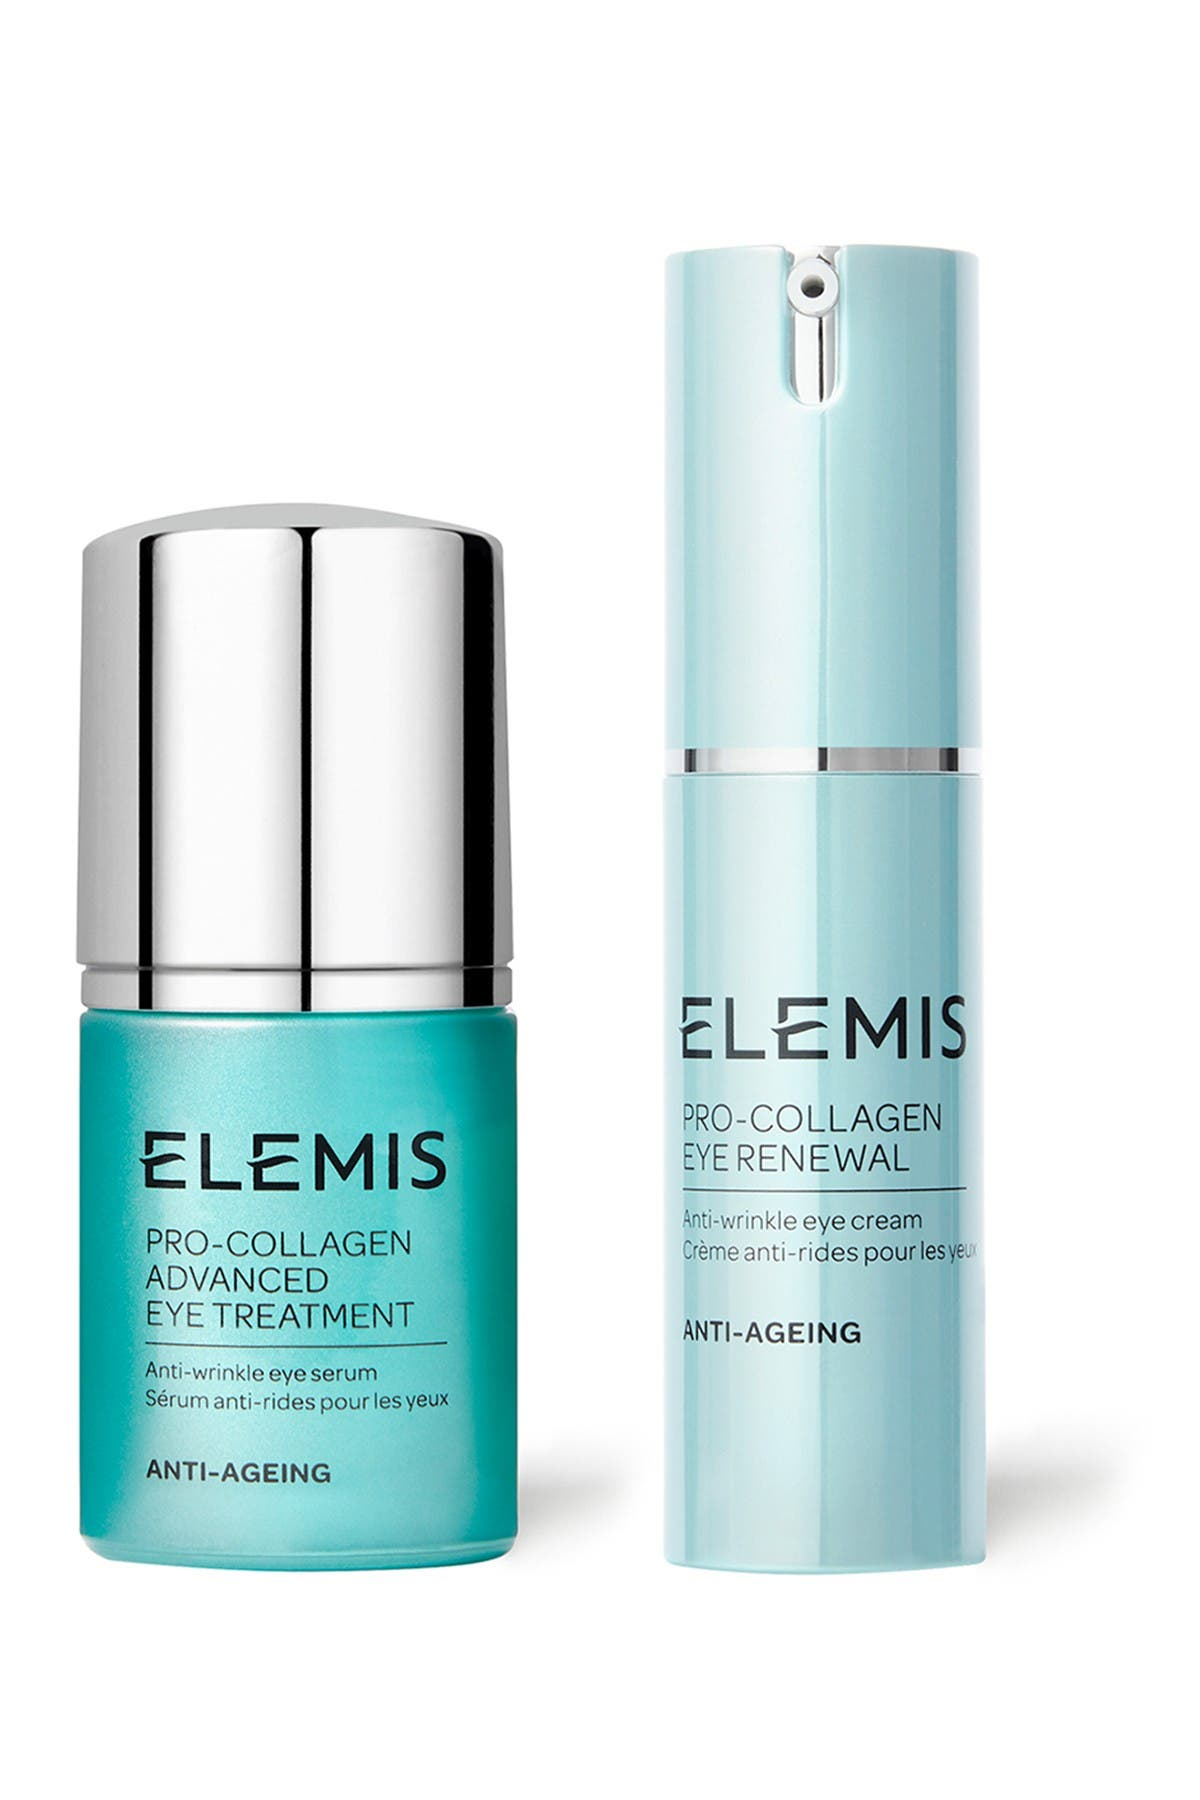 Image of Elemis Pro-Collagen Eye Duo